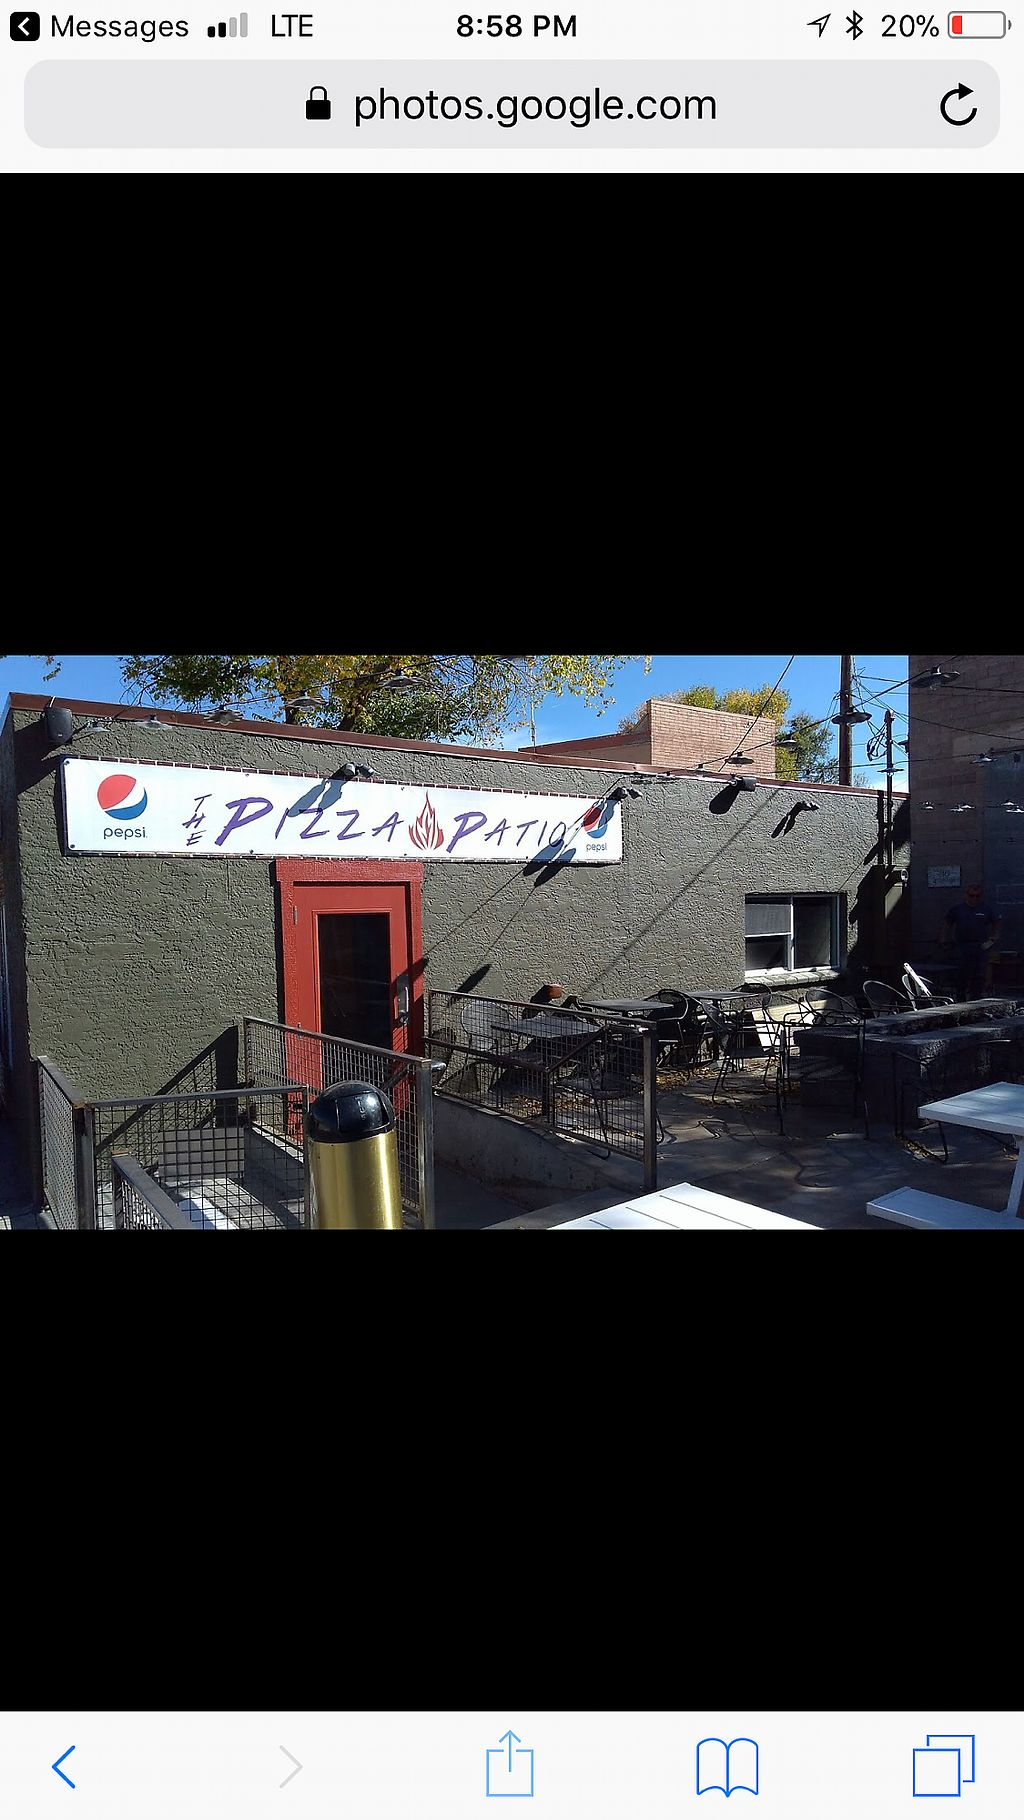 """Photo of The Pizza Patio  by <a href=""""/members/profile/Justusveggies"""">Justusveggies</a> <br/>Outside  <br/> October 26, 2017  - <a href='/contact/abuse/image/103761/319119'>Report</a>"""